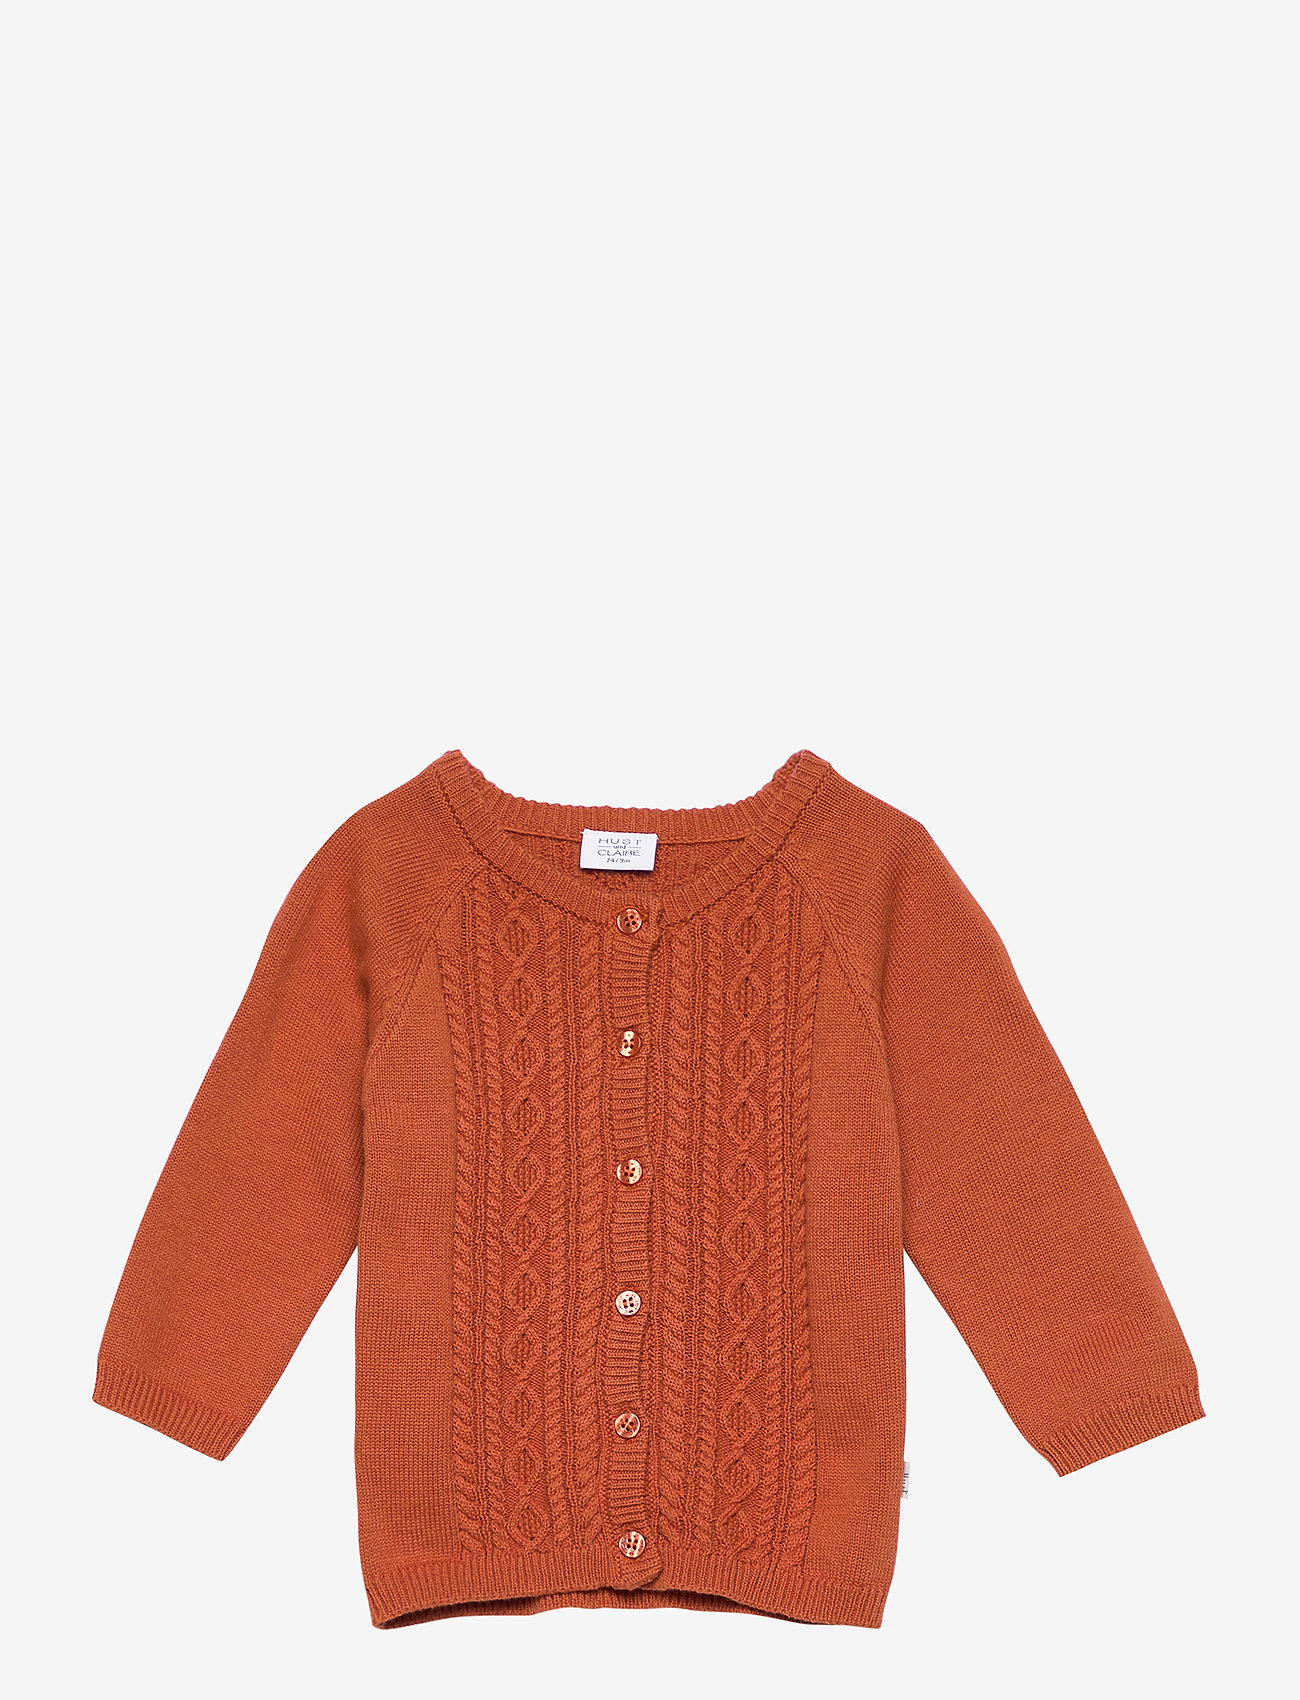 Hust & Claire - Cammie - Cardigan - gilets - rusty - 0